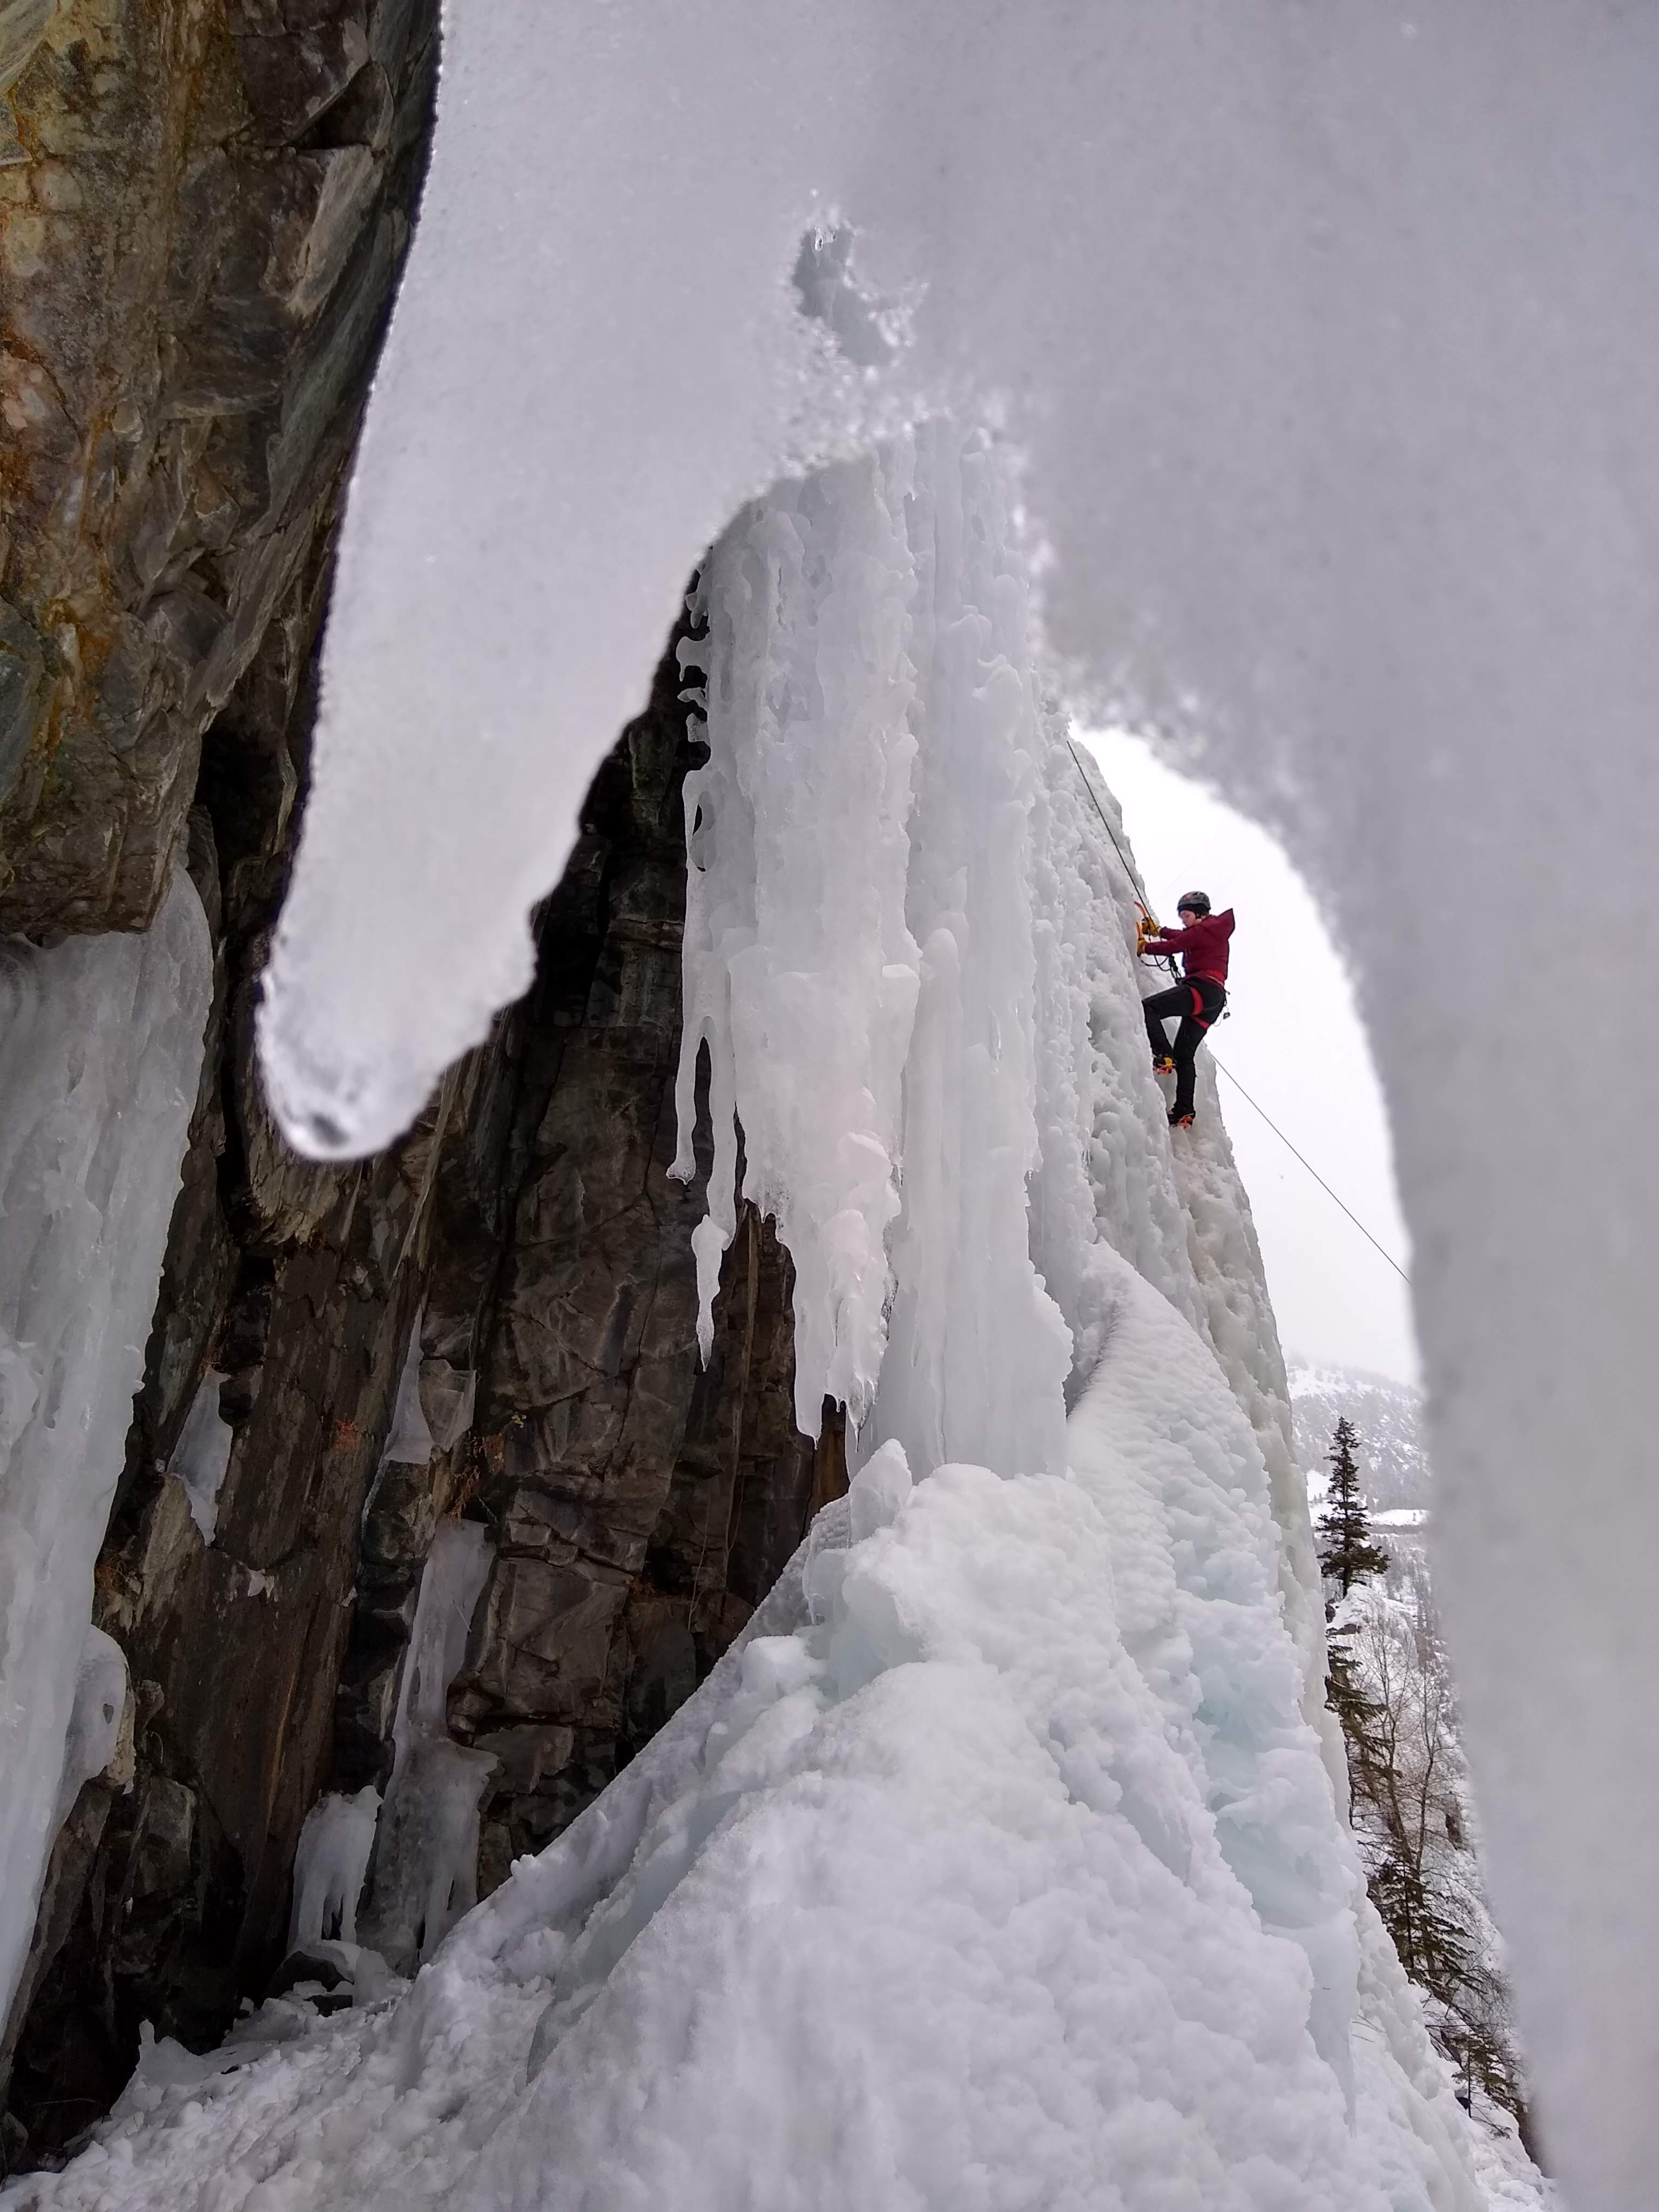 Katie R. '19 Ice Climbing in Ouray, Colorado